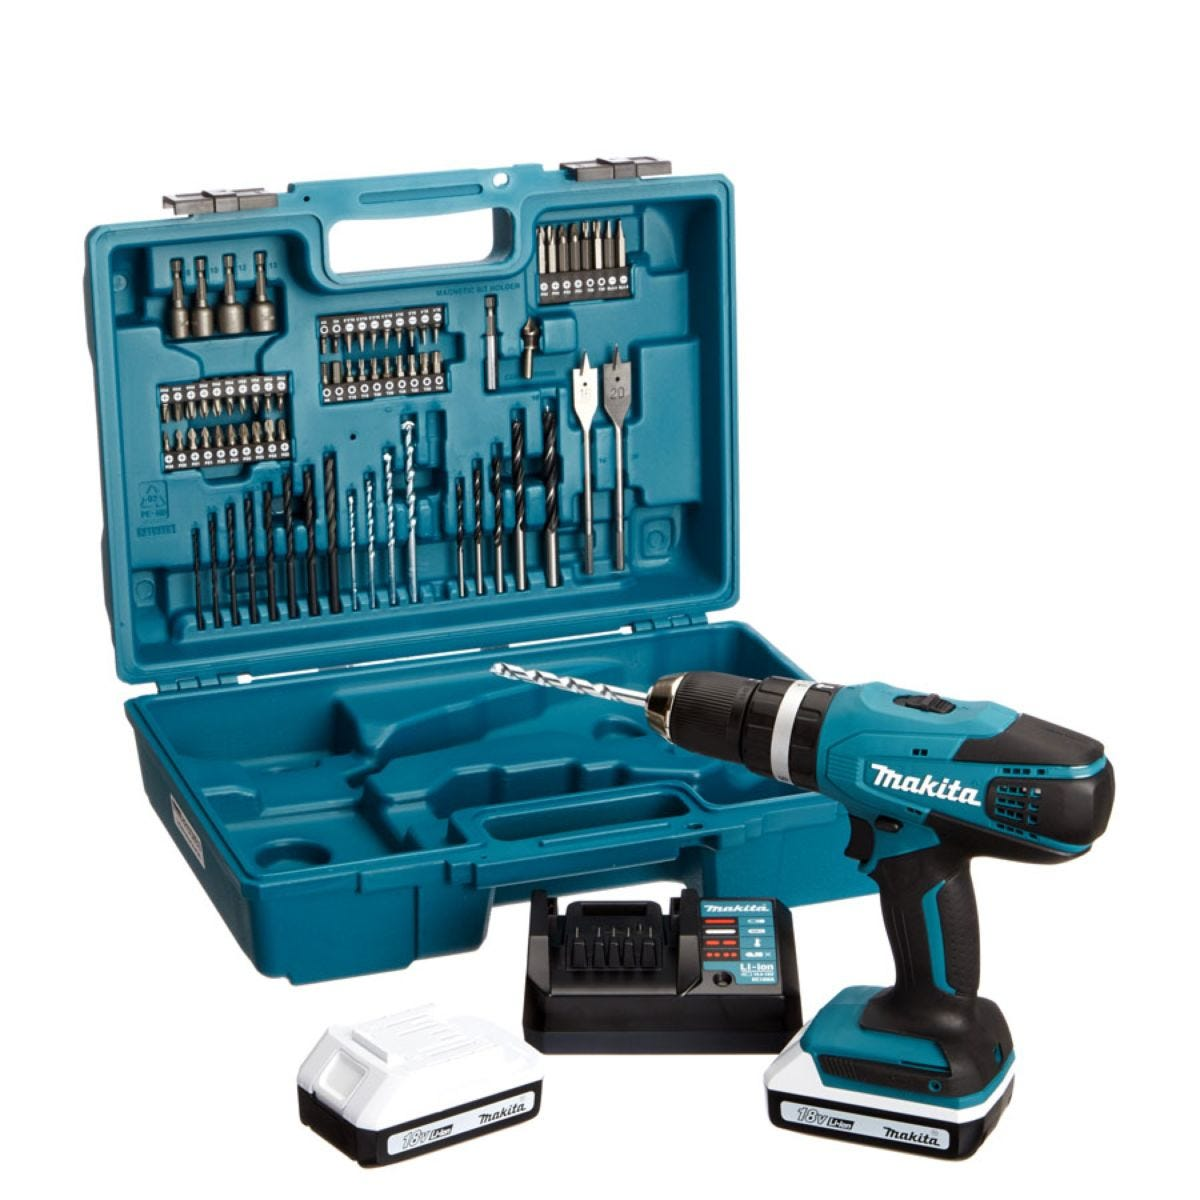 Makita G-Series 18V 2 X 1.5Ah Li-Ion Cordless Combi Drill with 74 Accessories